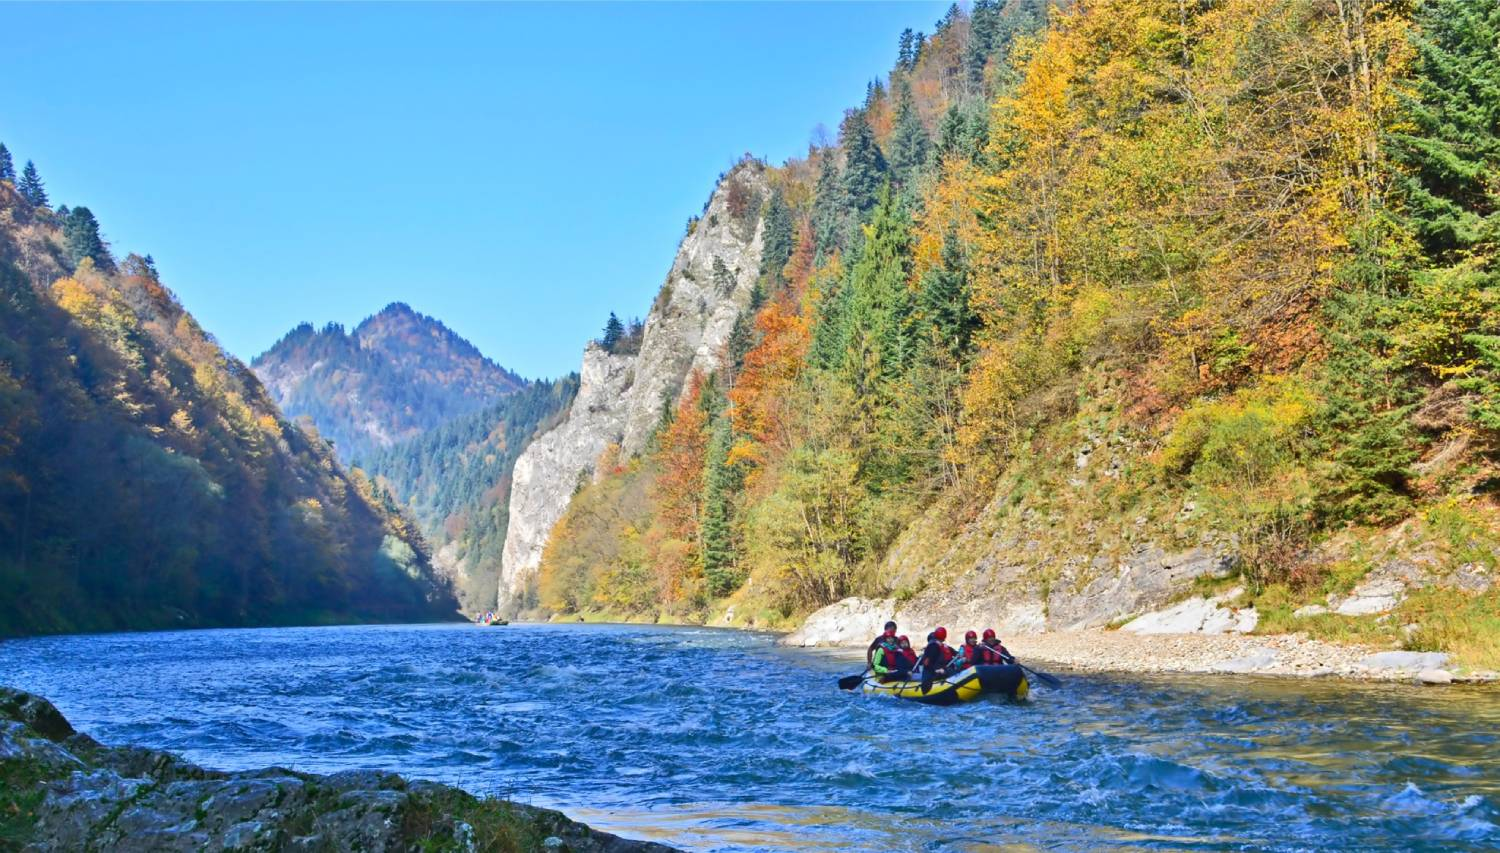 Dunajec River Gorge - Things To Do In Krakow